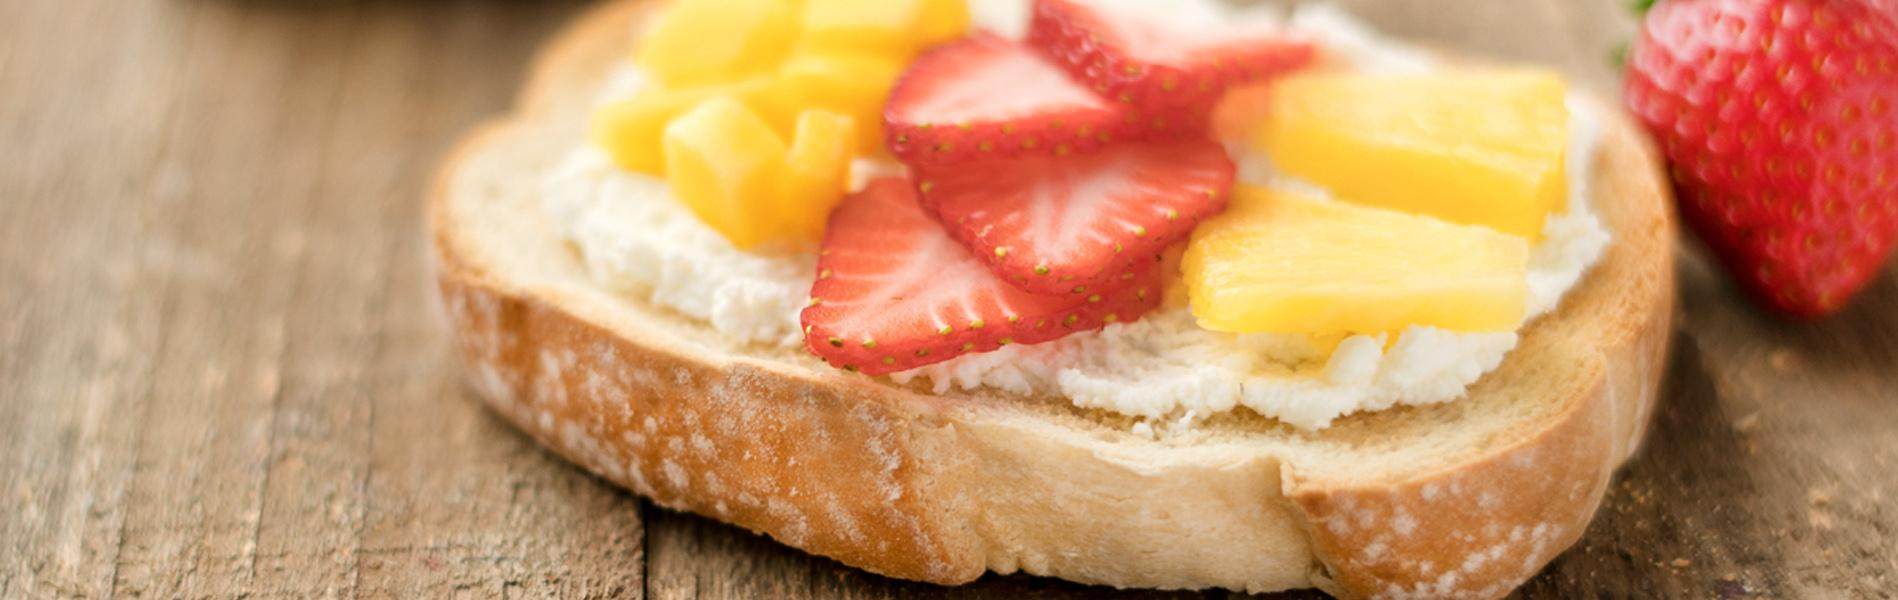 Ricotta cheese and fruit on toast